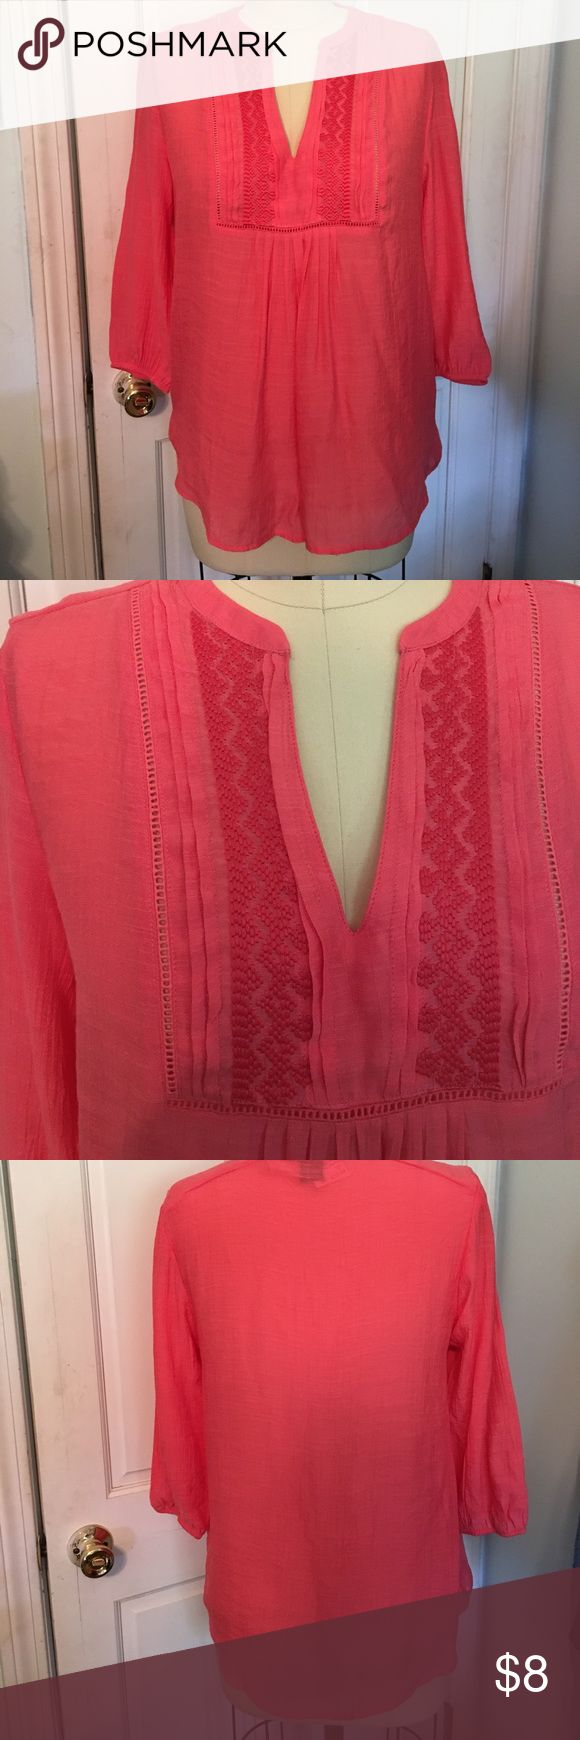 Woven top size M from Papaya NWT Woven top from junior store Papaya is NWT. Size M. timing Tops Blouses